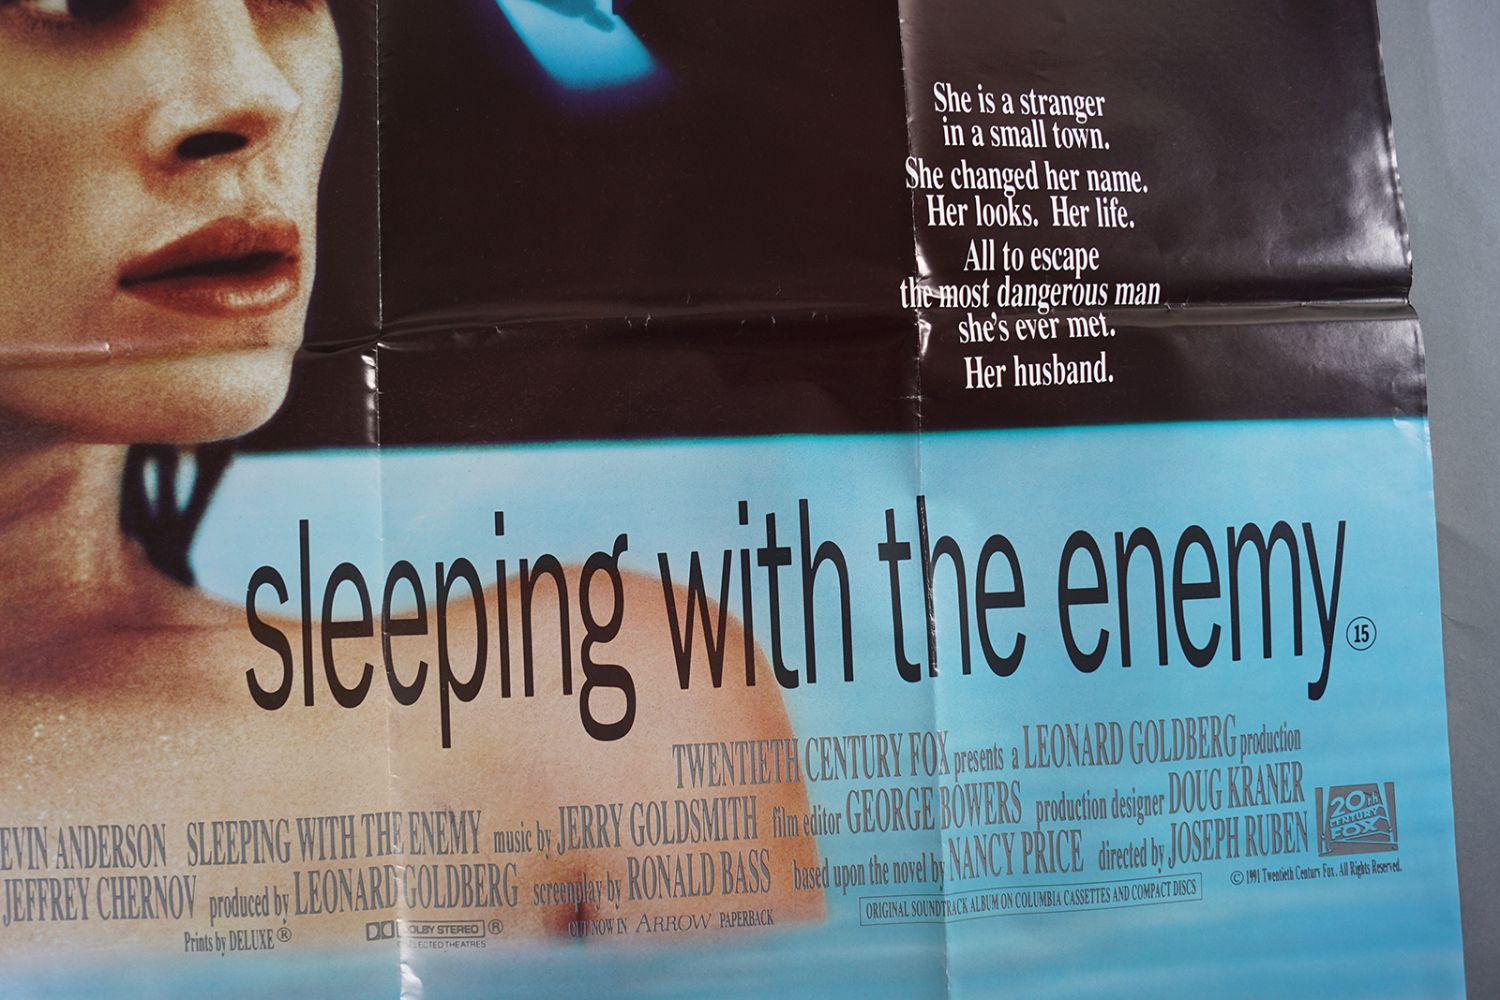 SLEEPING WITH THE ENEMY - Image 2 of 2